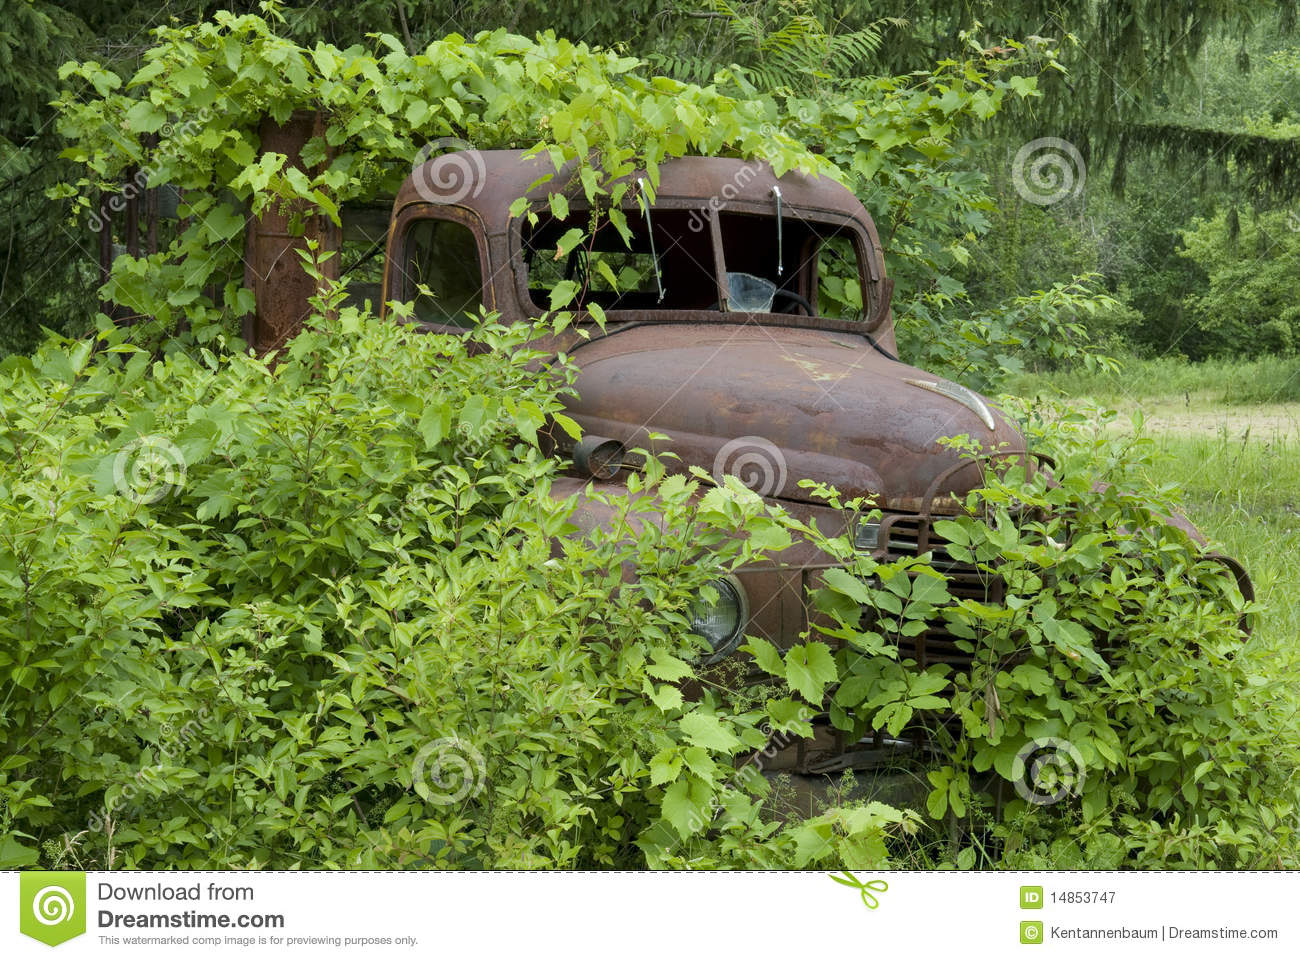 Rusted truck buried in foliage_2